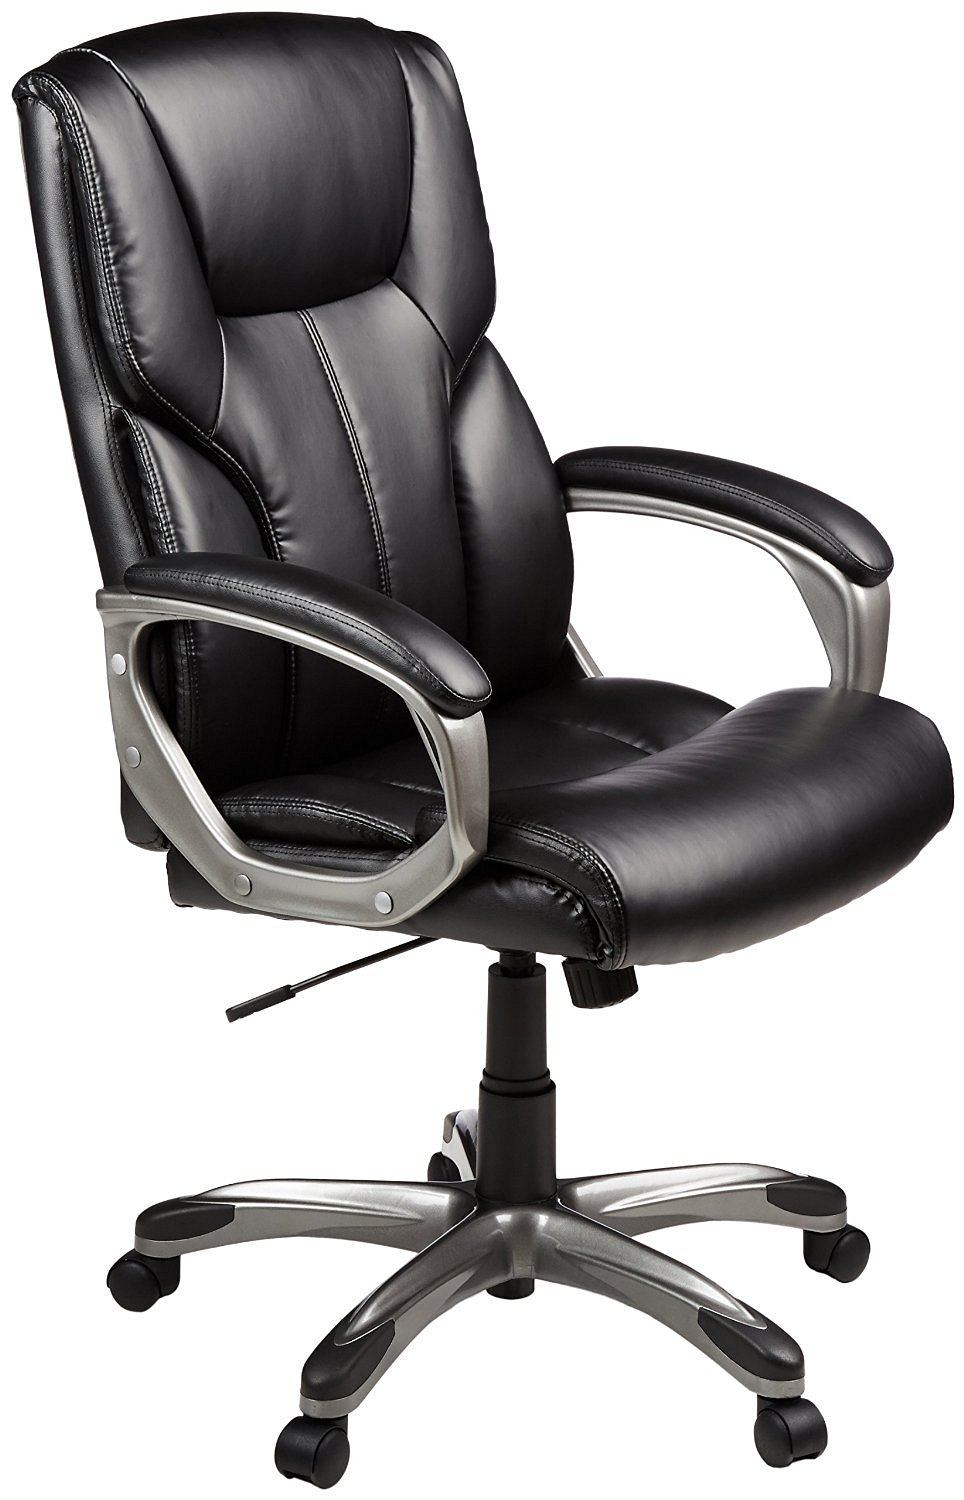 3 best office chairs under 300 as of 2019 slant